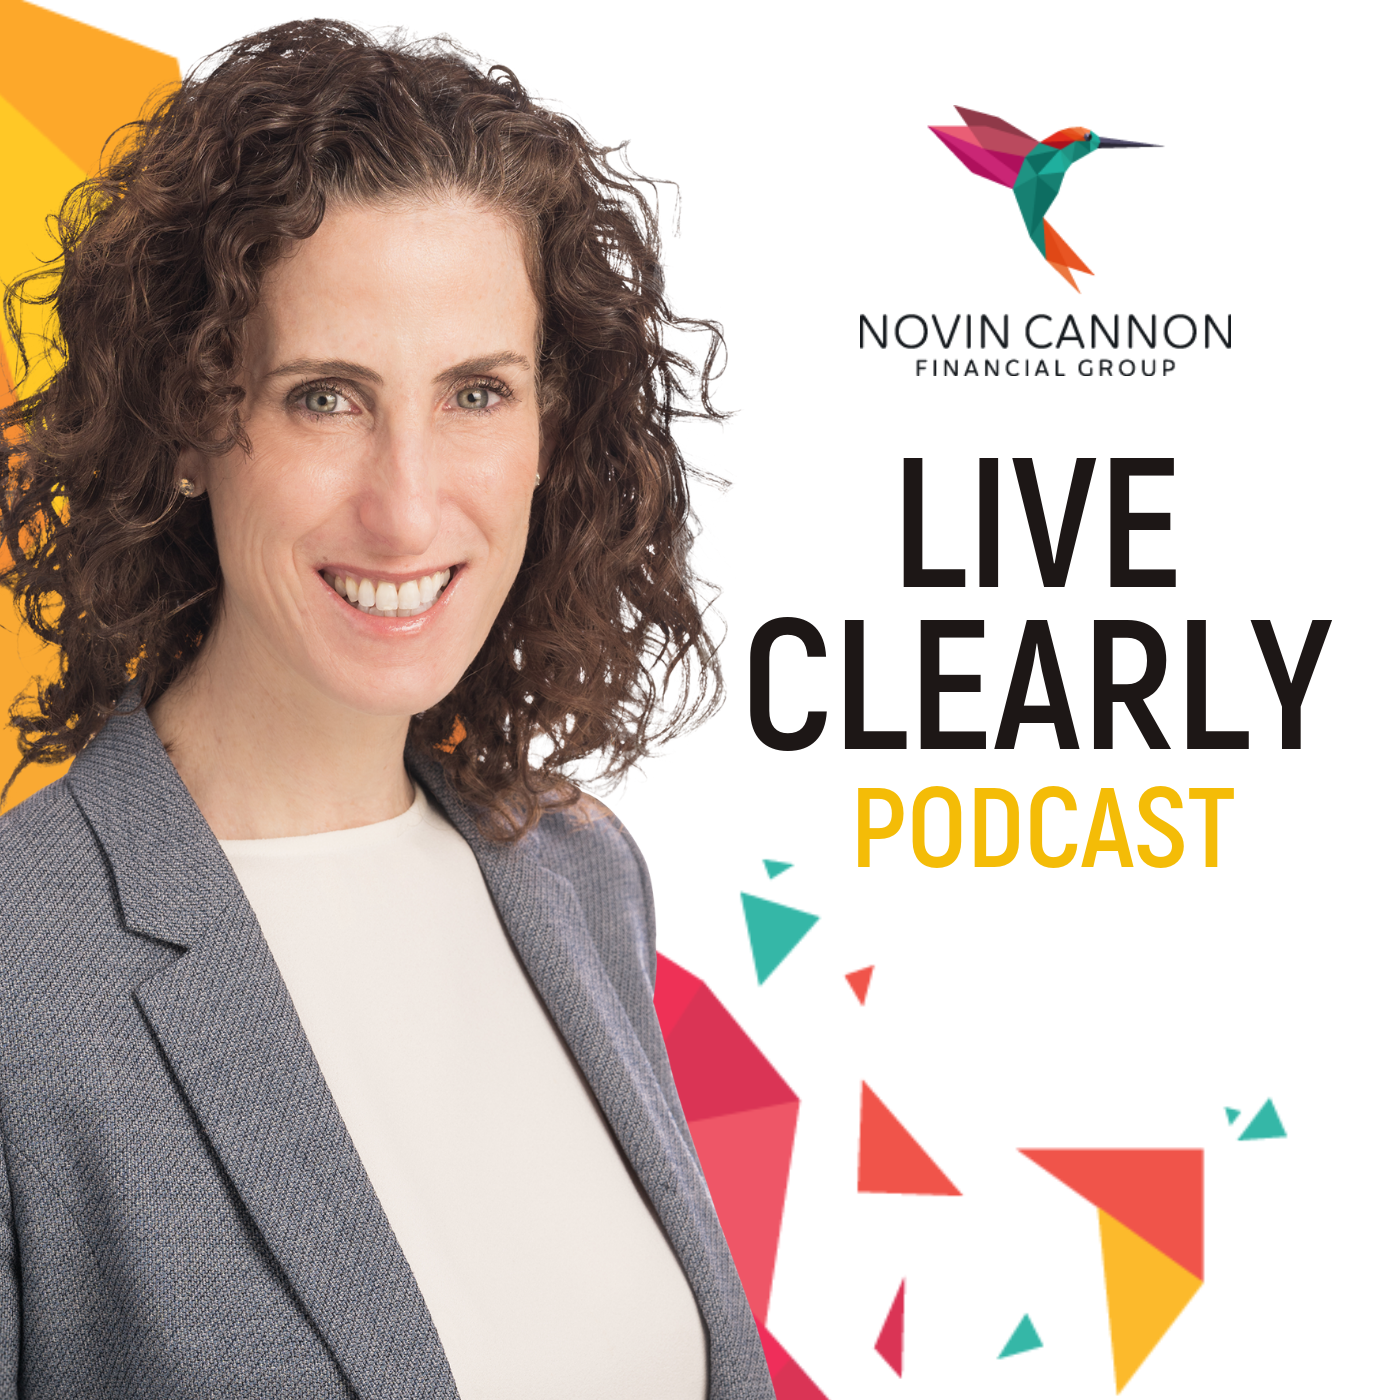 Live Clearly Podcast